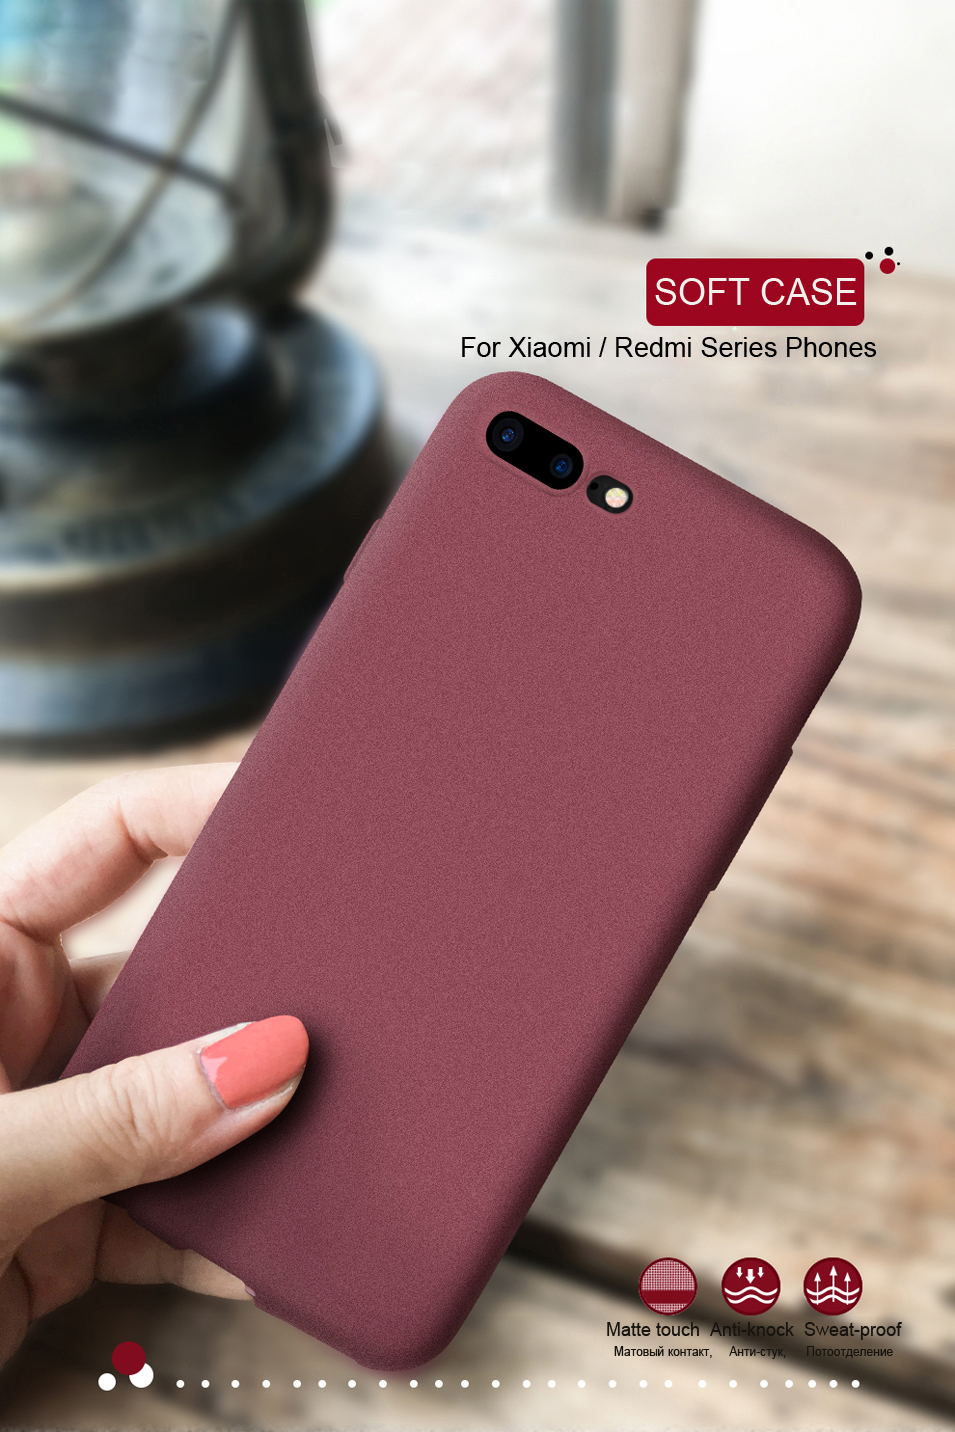 Soft Silicone Phone Case for Xiaomi Note 2 A1 Mix 2s 5X Max 2 Case Cover for Redmi Note 5A Prime 2S 5 Plus Case Matte Back Cover (7)